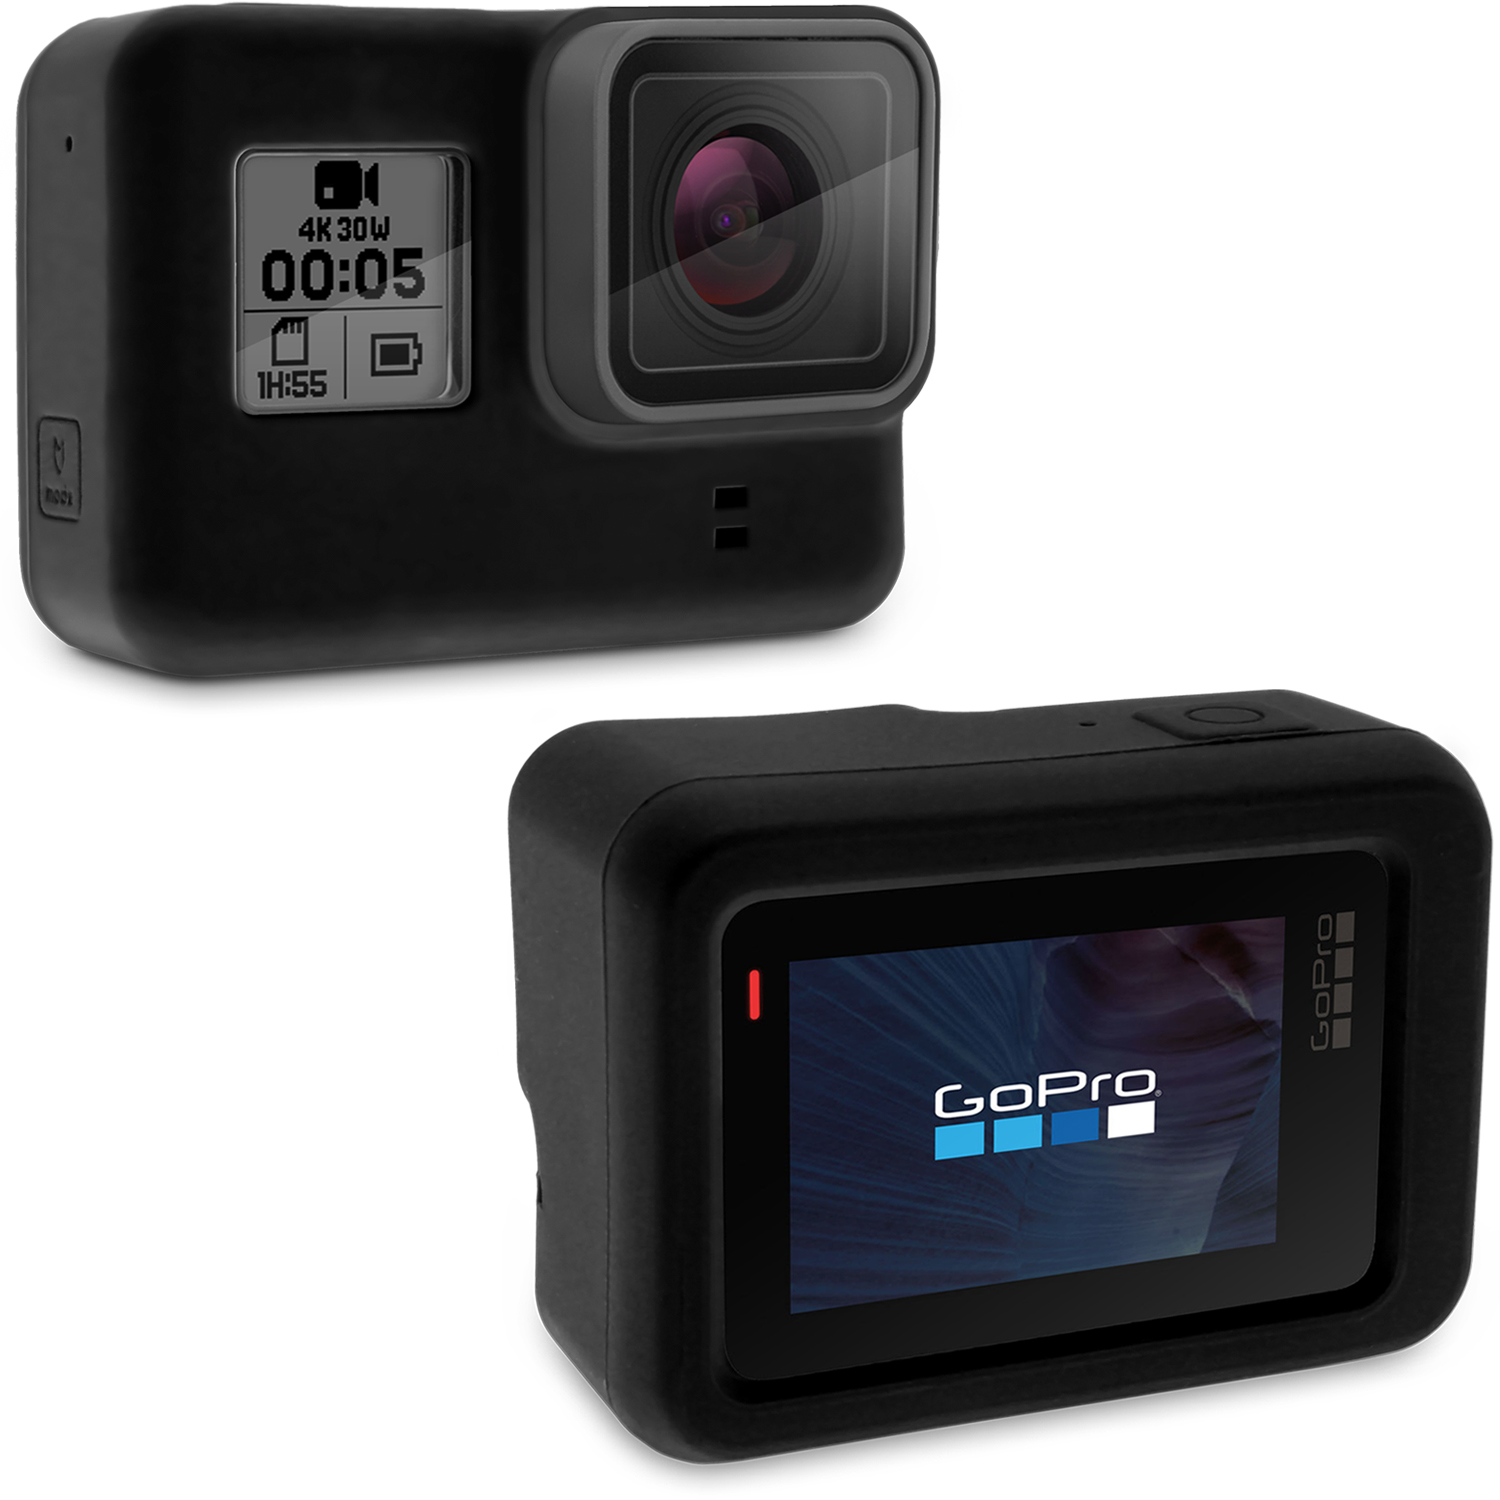 Optix Pro Black Silicone Housing Protective Case for GoPro Hero5 Black Action Camera (NOT suitable for Hero5 Session)